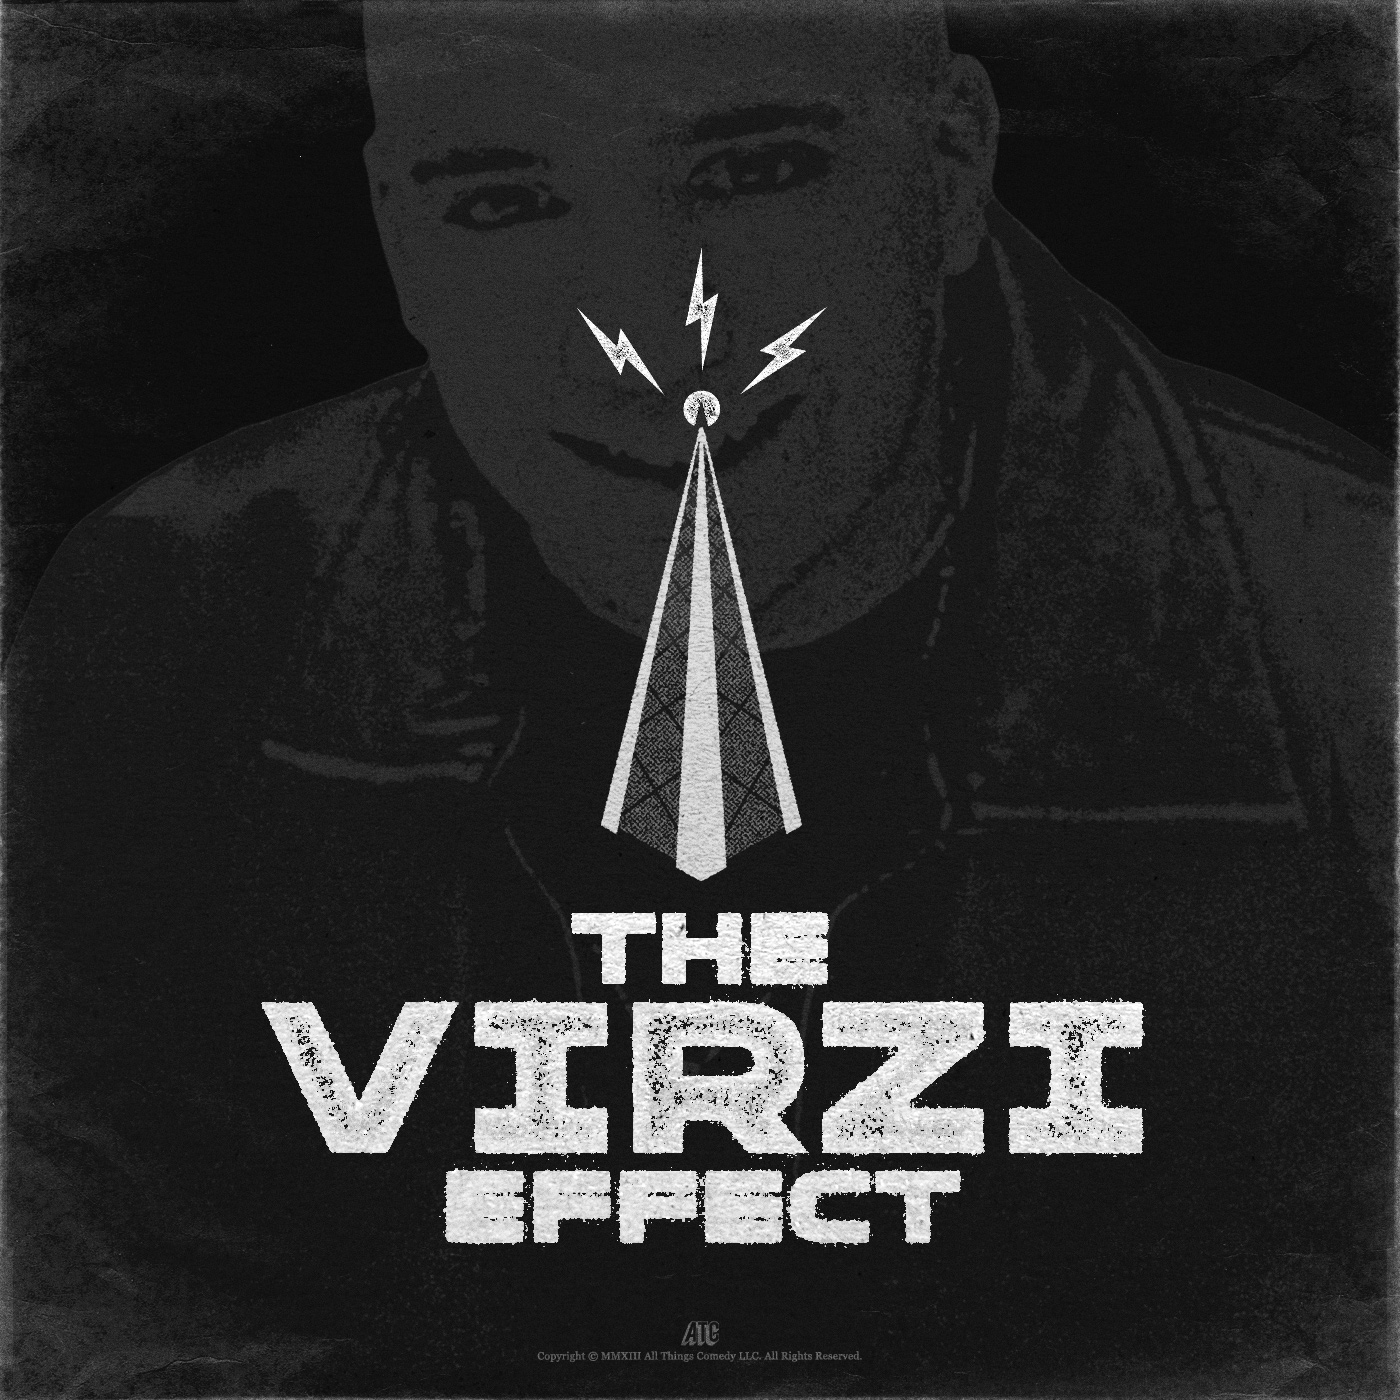 The Virzi Effect